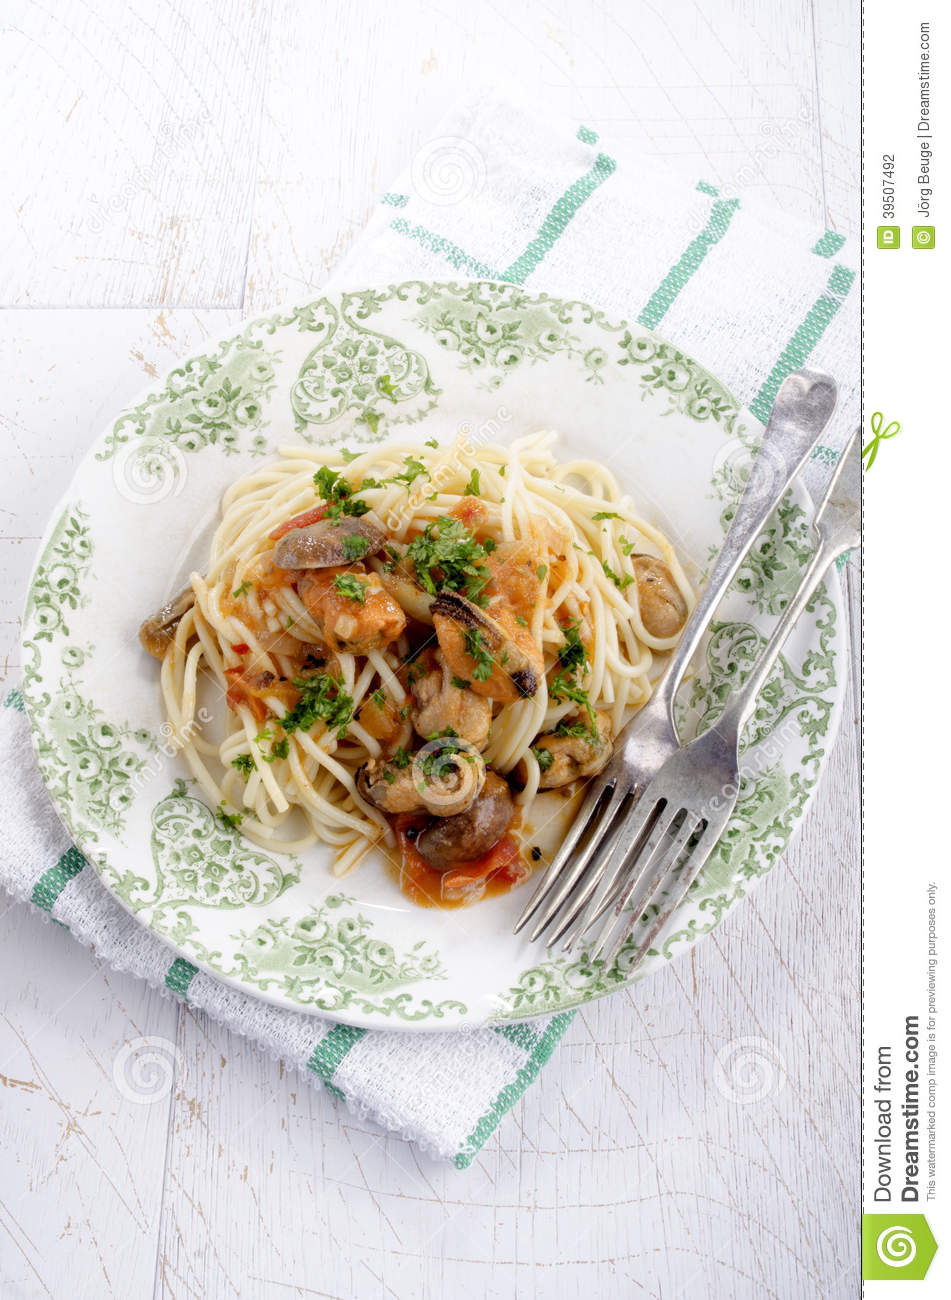 Italian dish with spaghetti and mussels